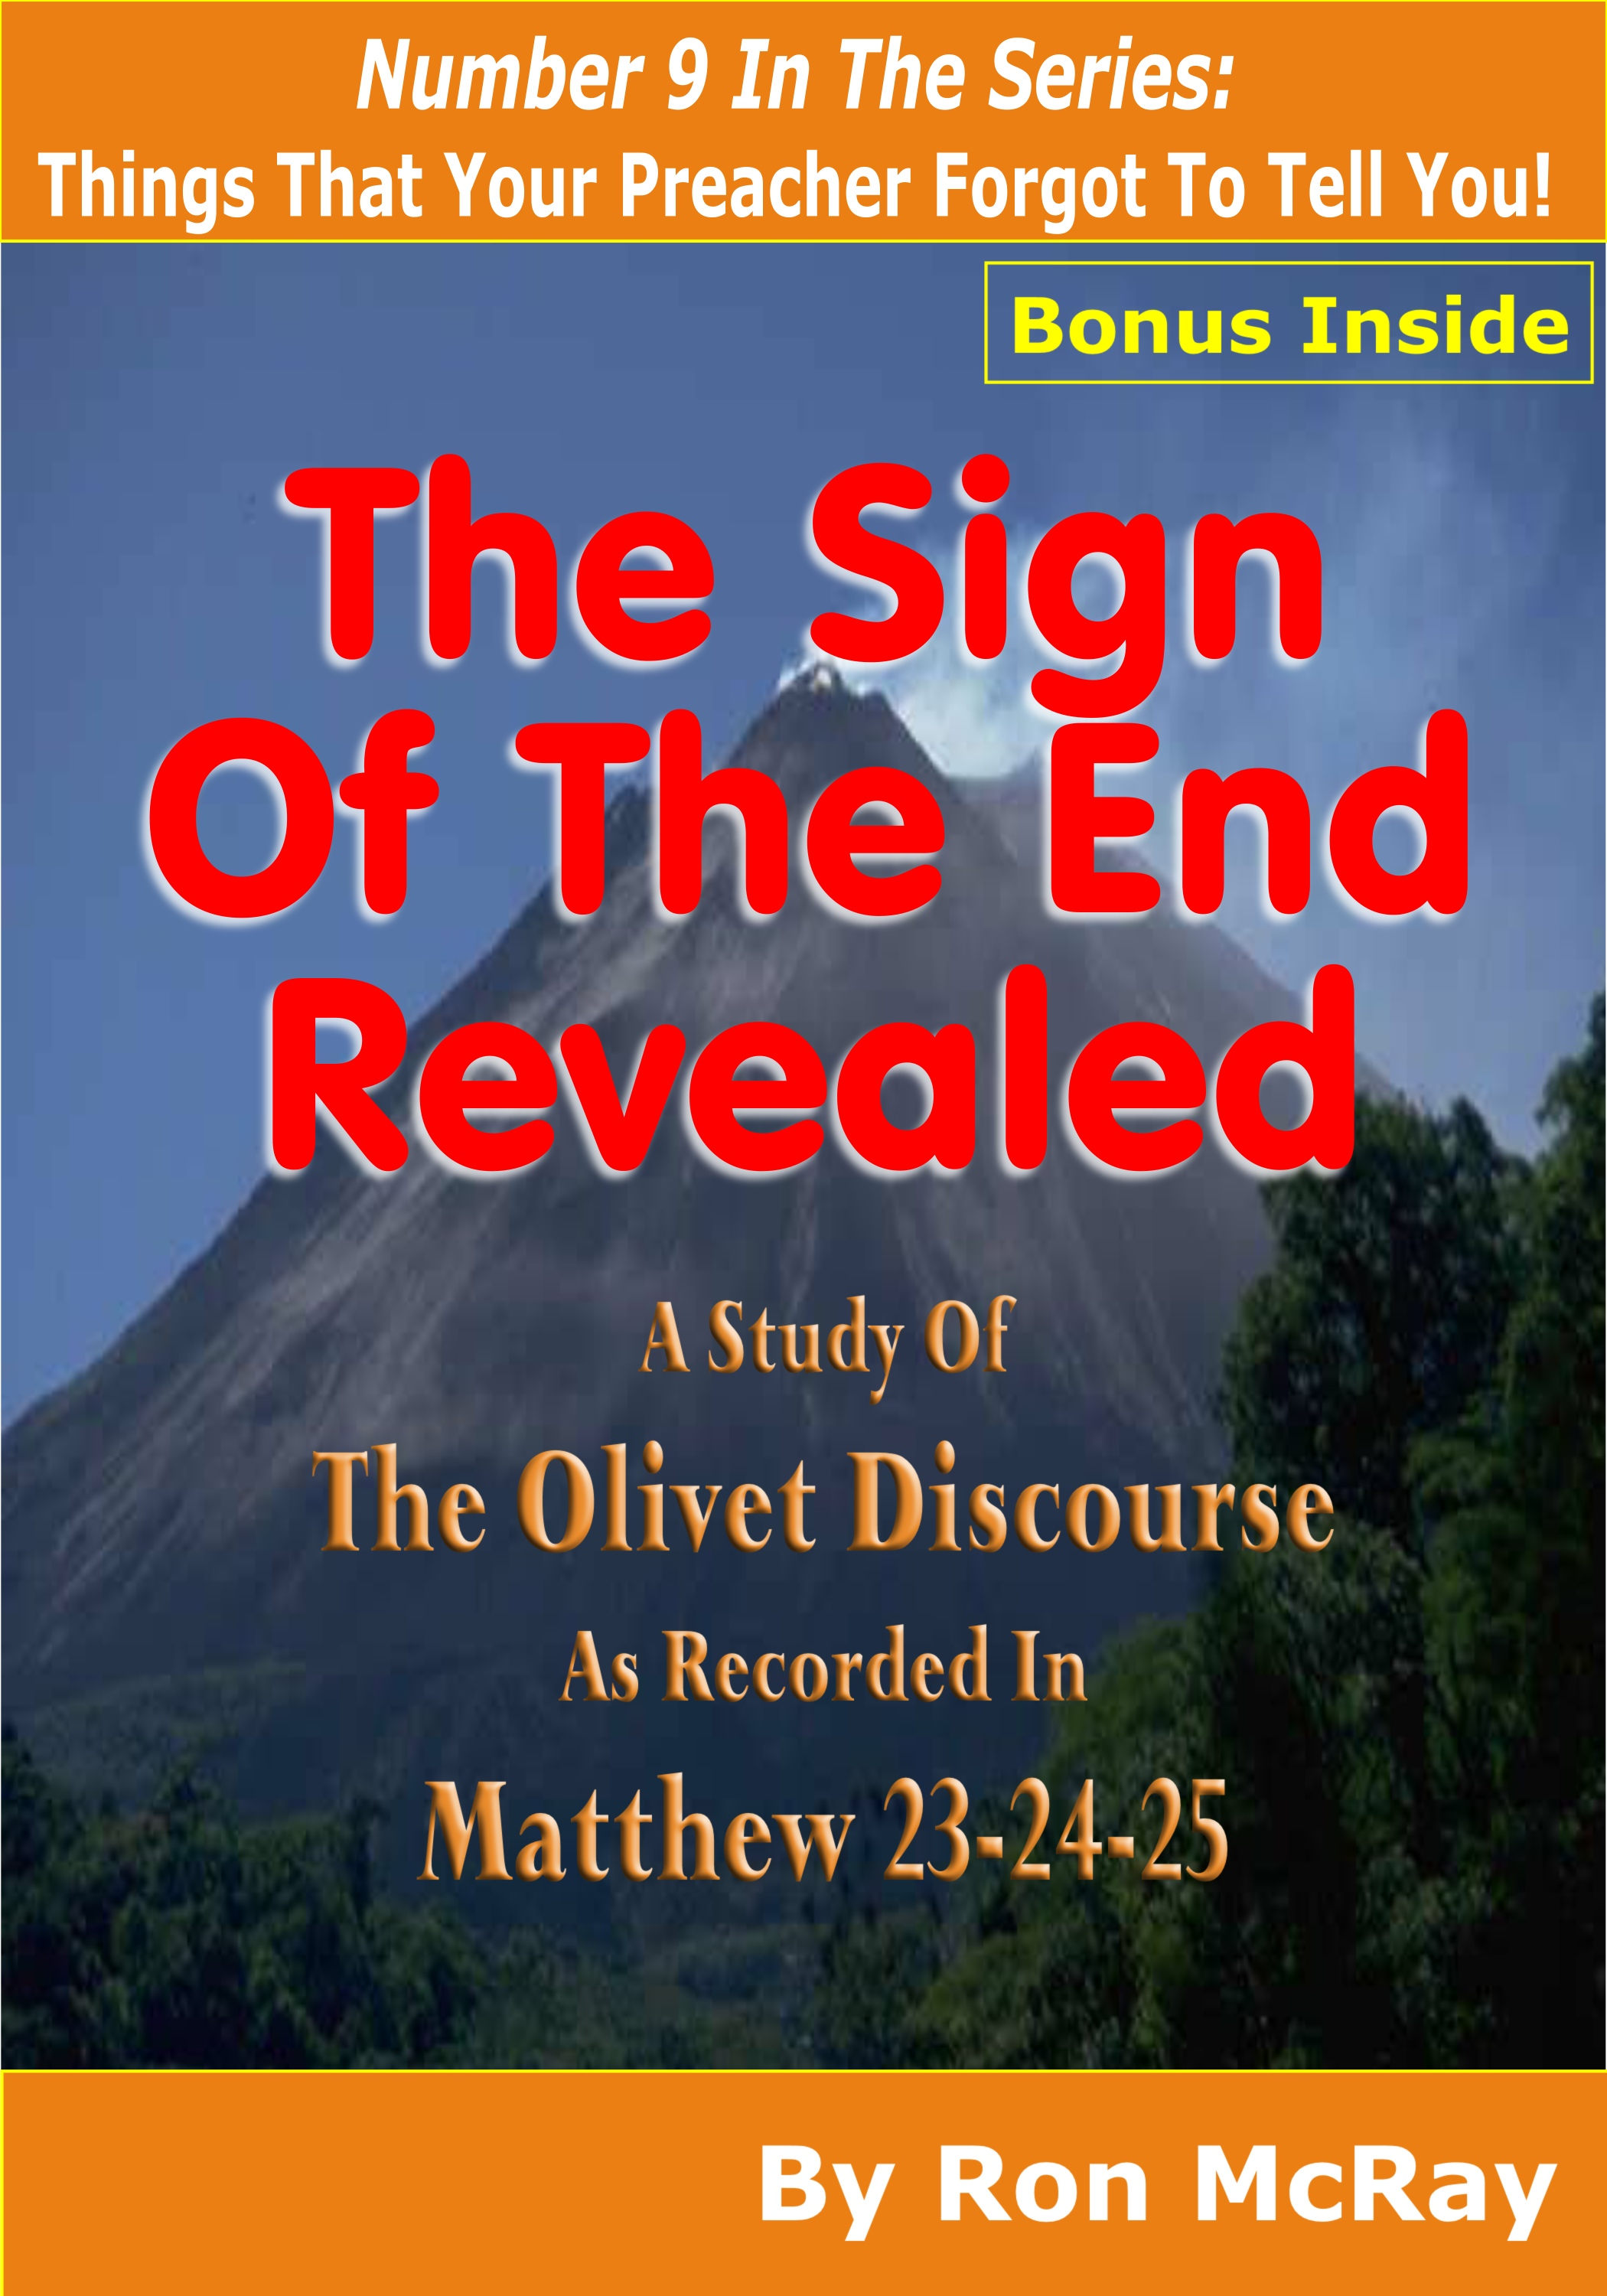 The Sign Of The End Revealed: A Study Of The Olivet Discourse